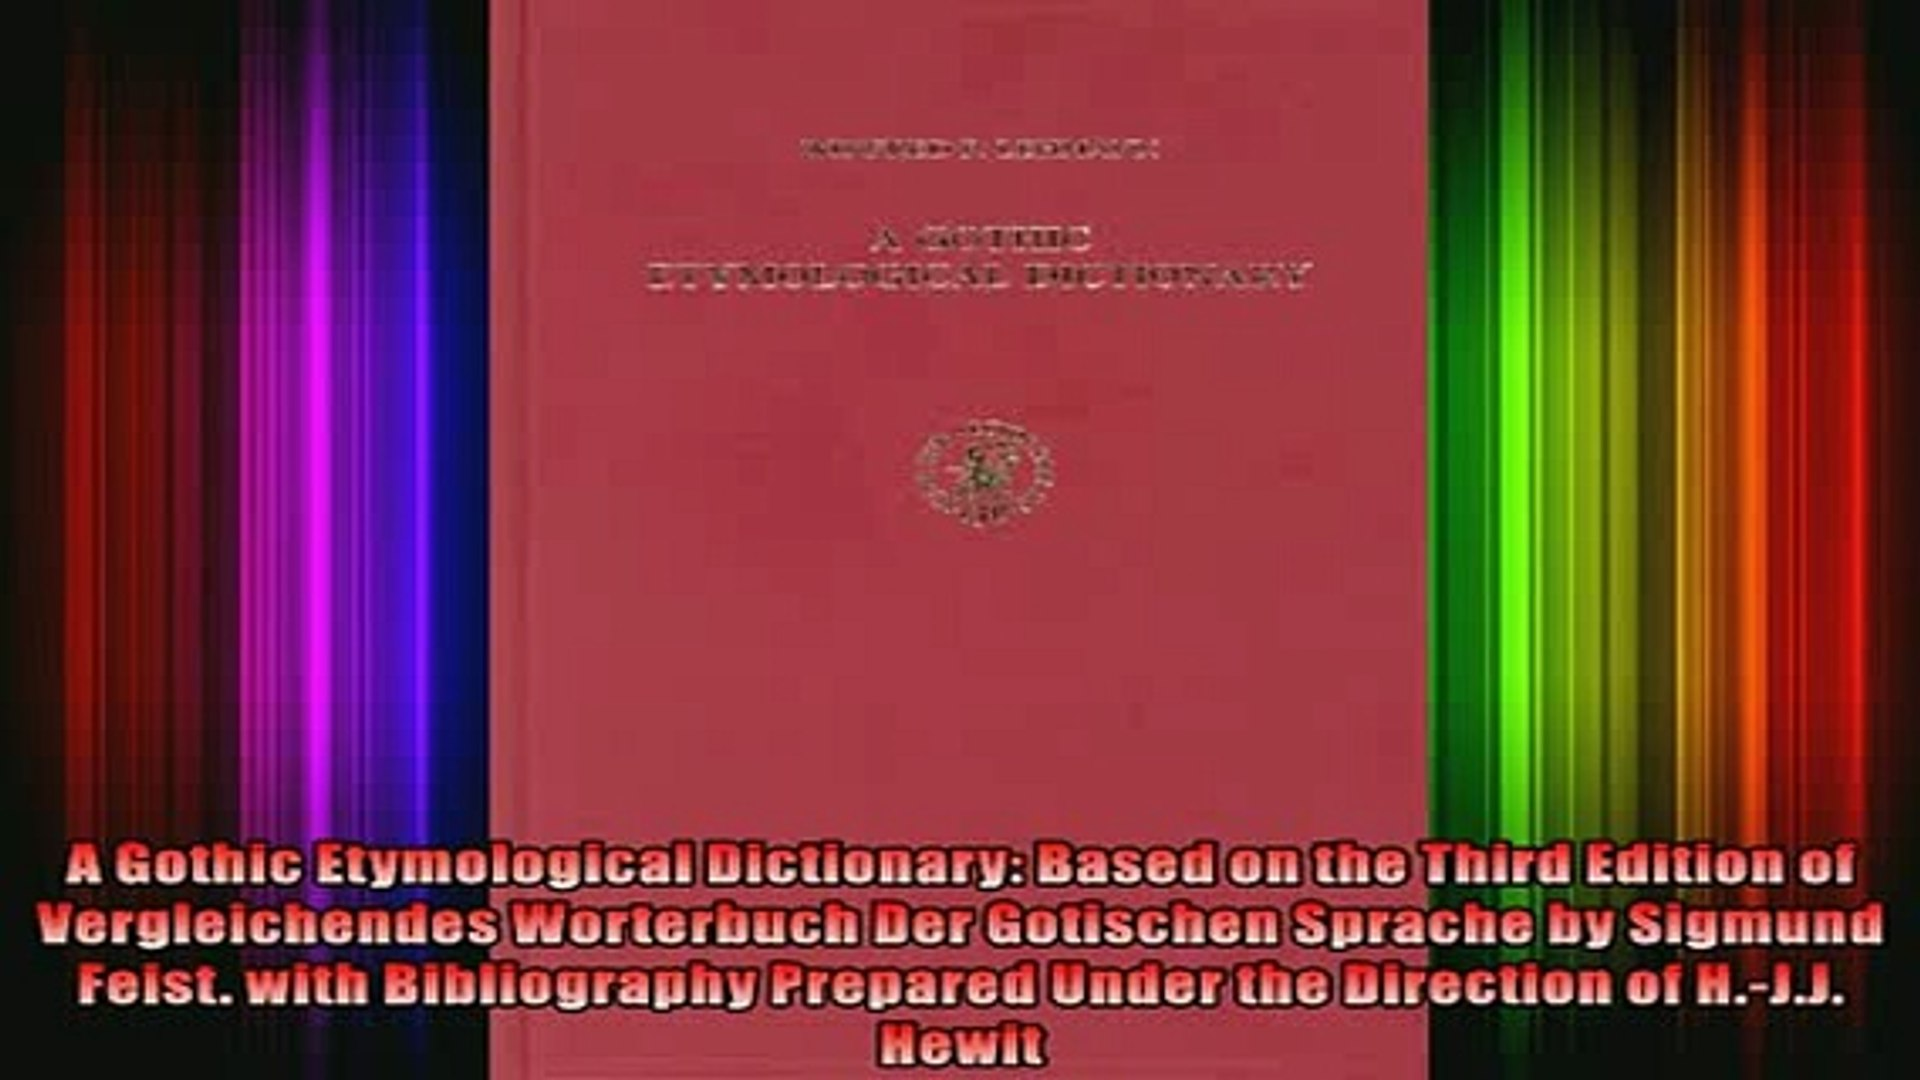 Read A Gothic Etymological Dictionary Based on the Third Edition of  Vergleichendes Worterbuch Full EBook